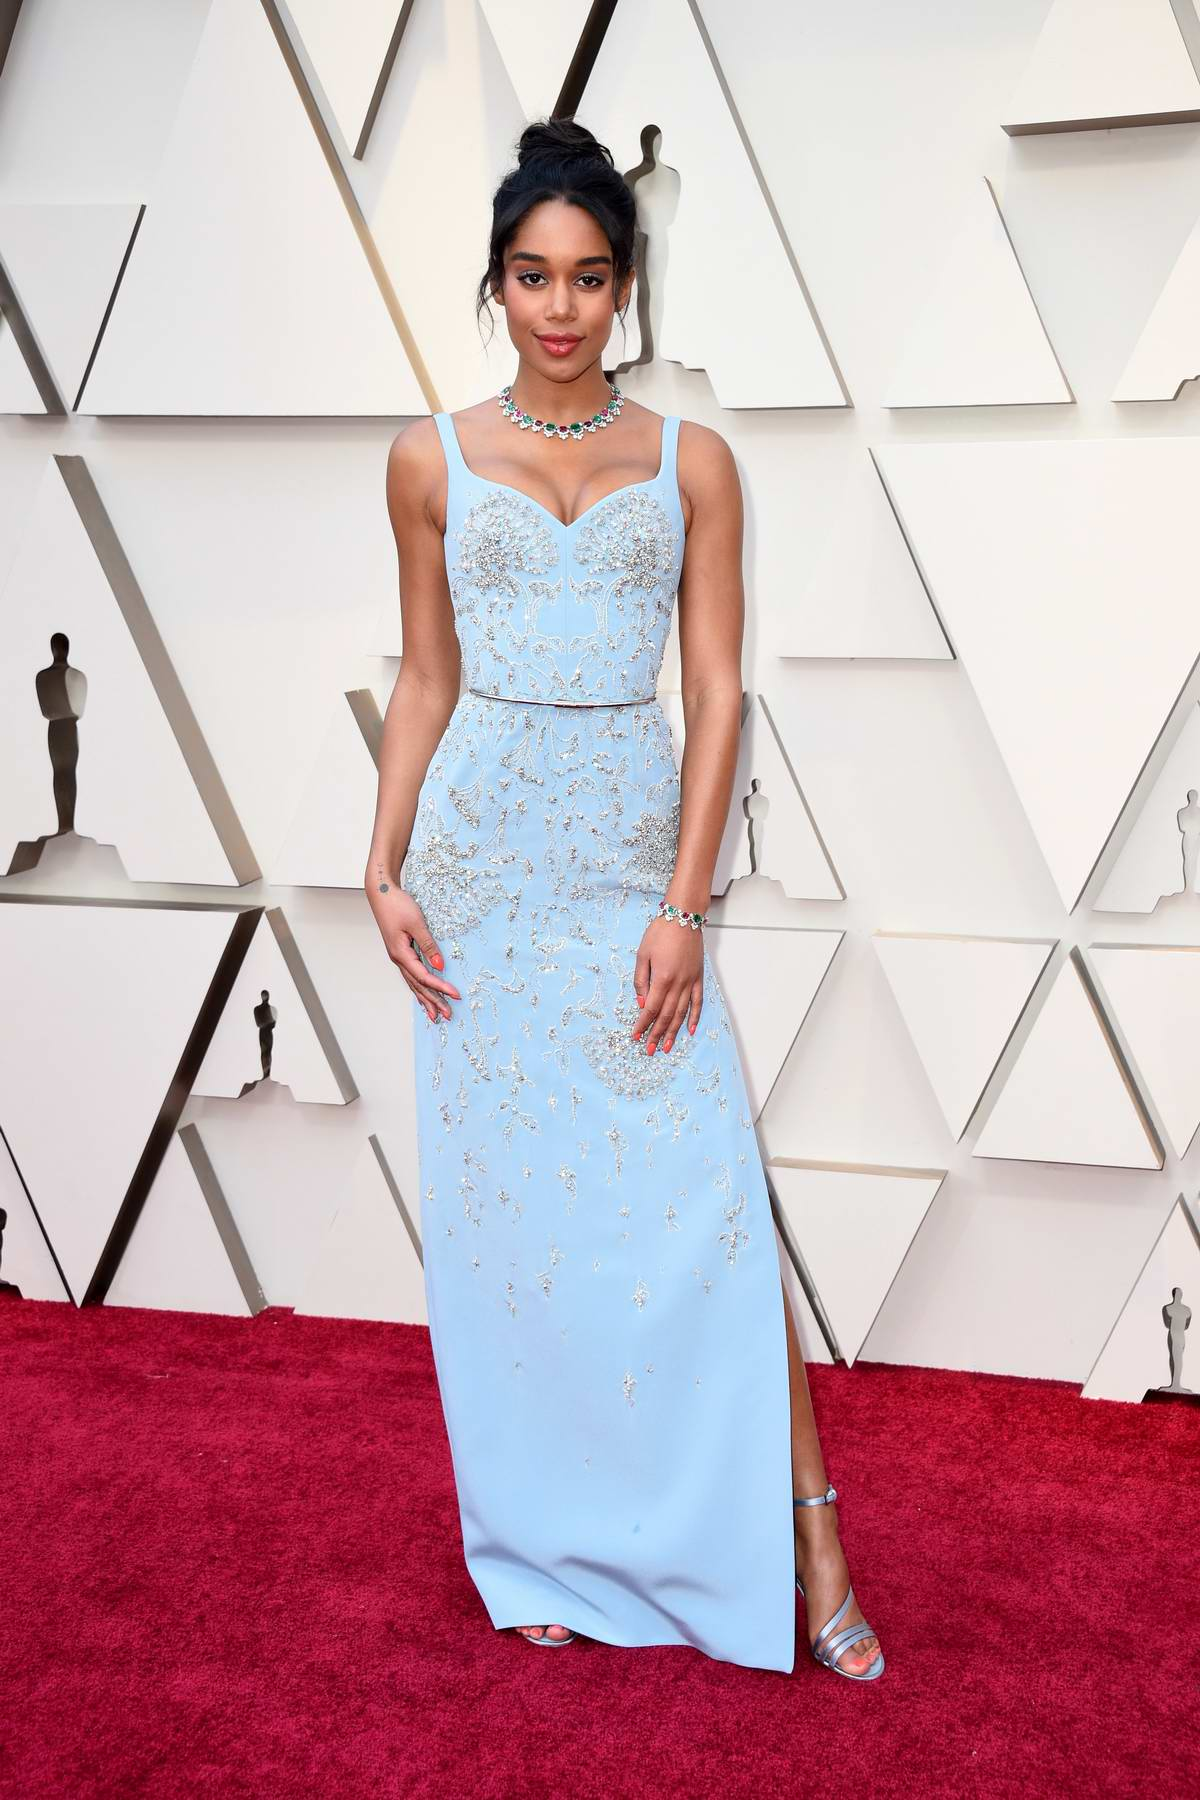 Laura Harrier attends the 91st Annual Academy Awards (Oscars 2019) held at the Dolby Theatre in Hollywood, California